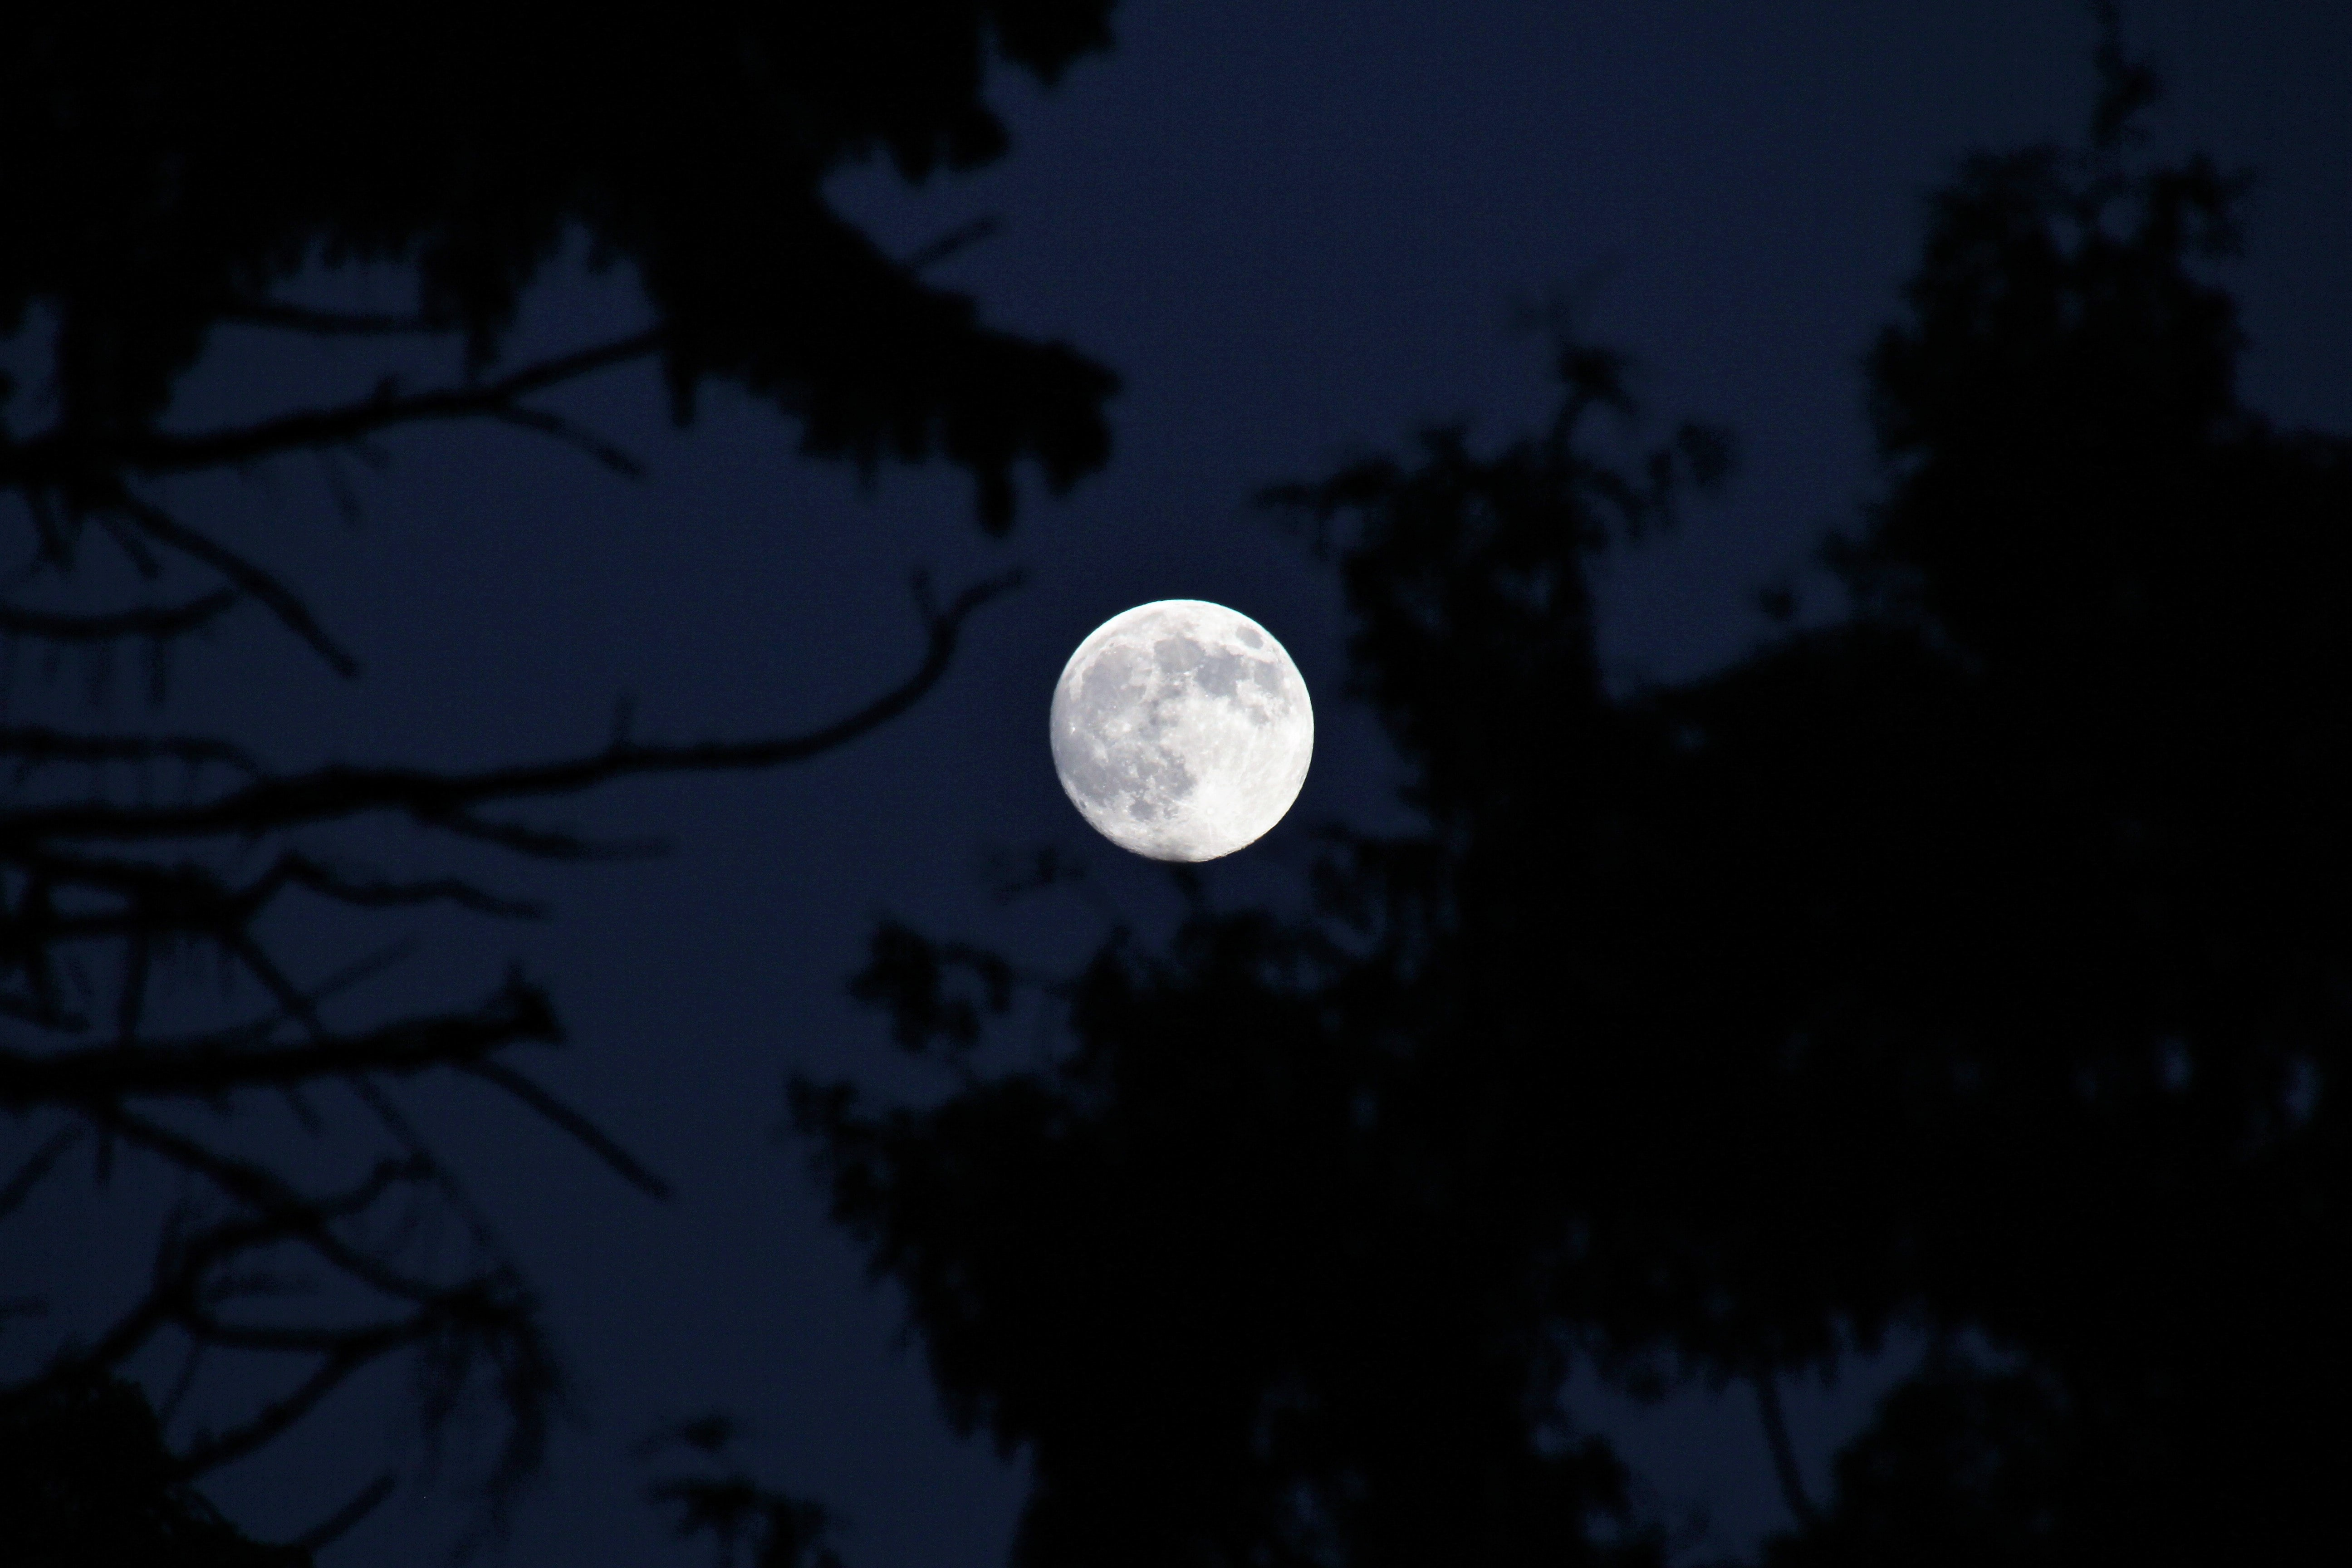 The full moon is seen through branches silhouetted against the night sky